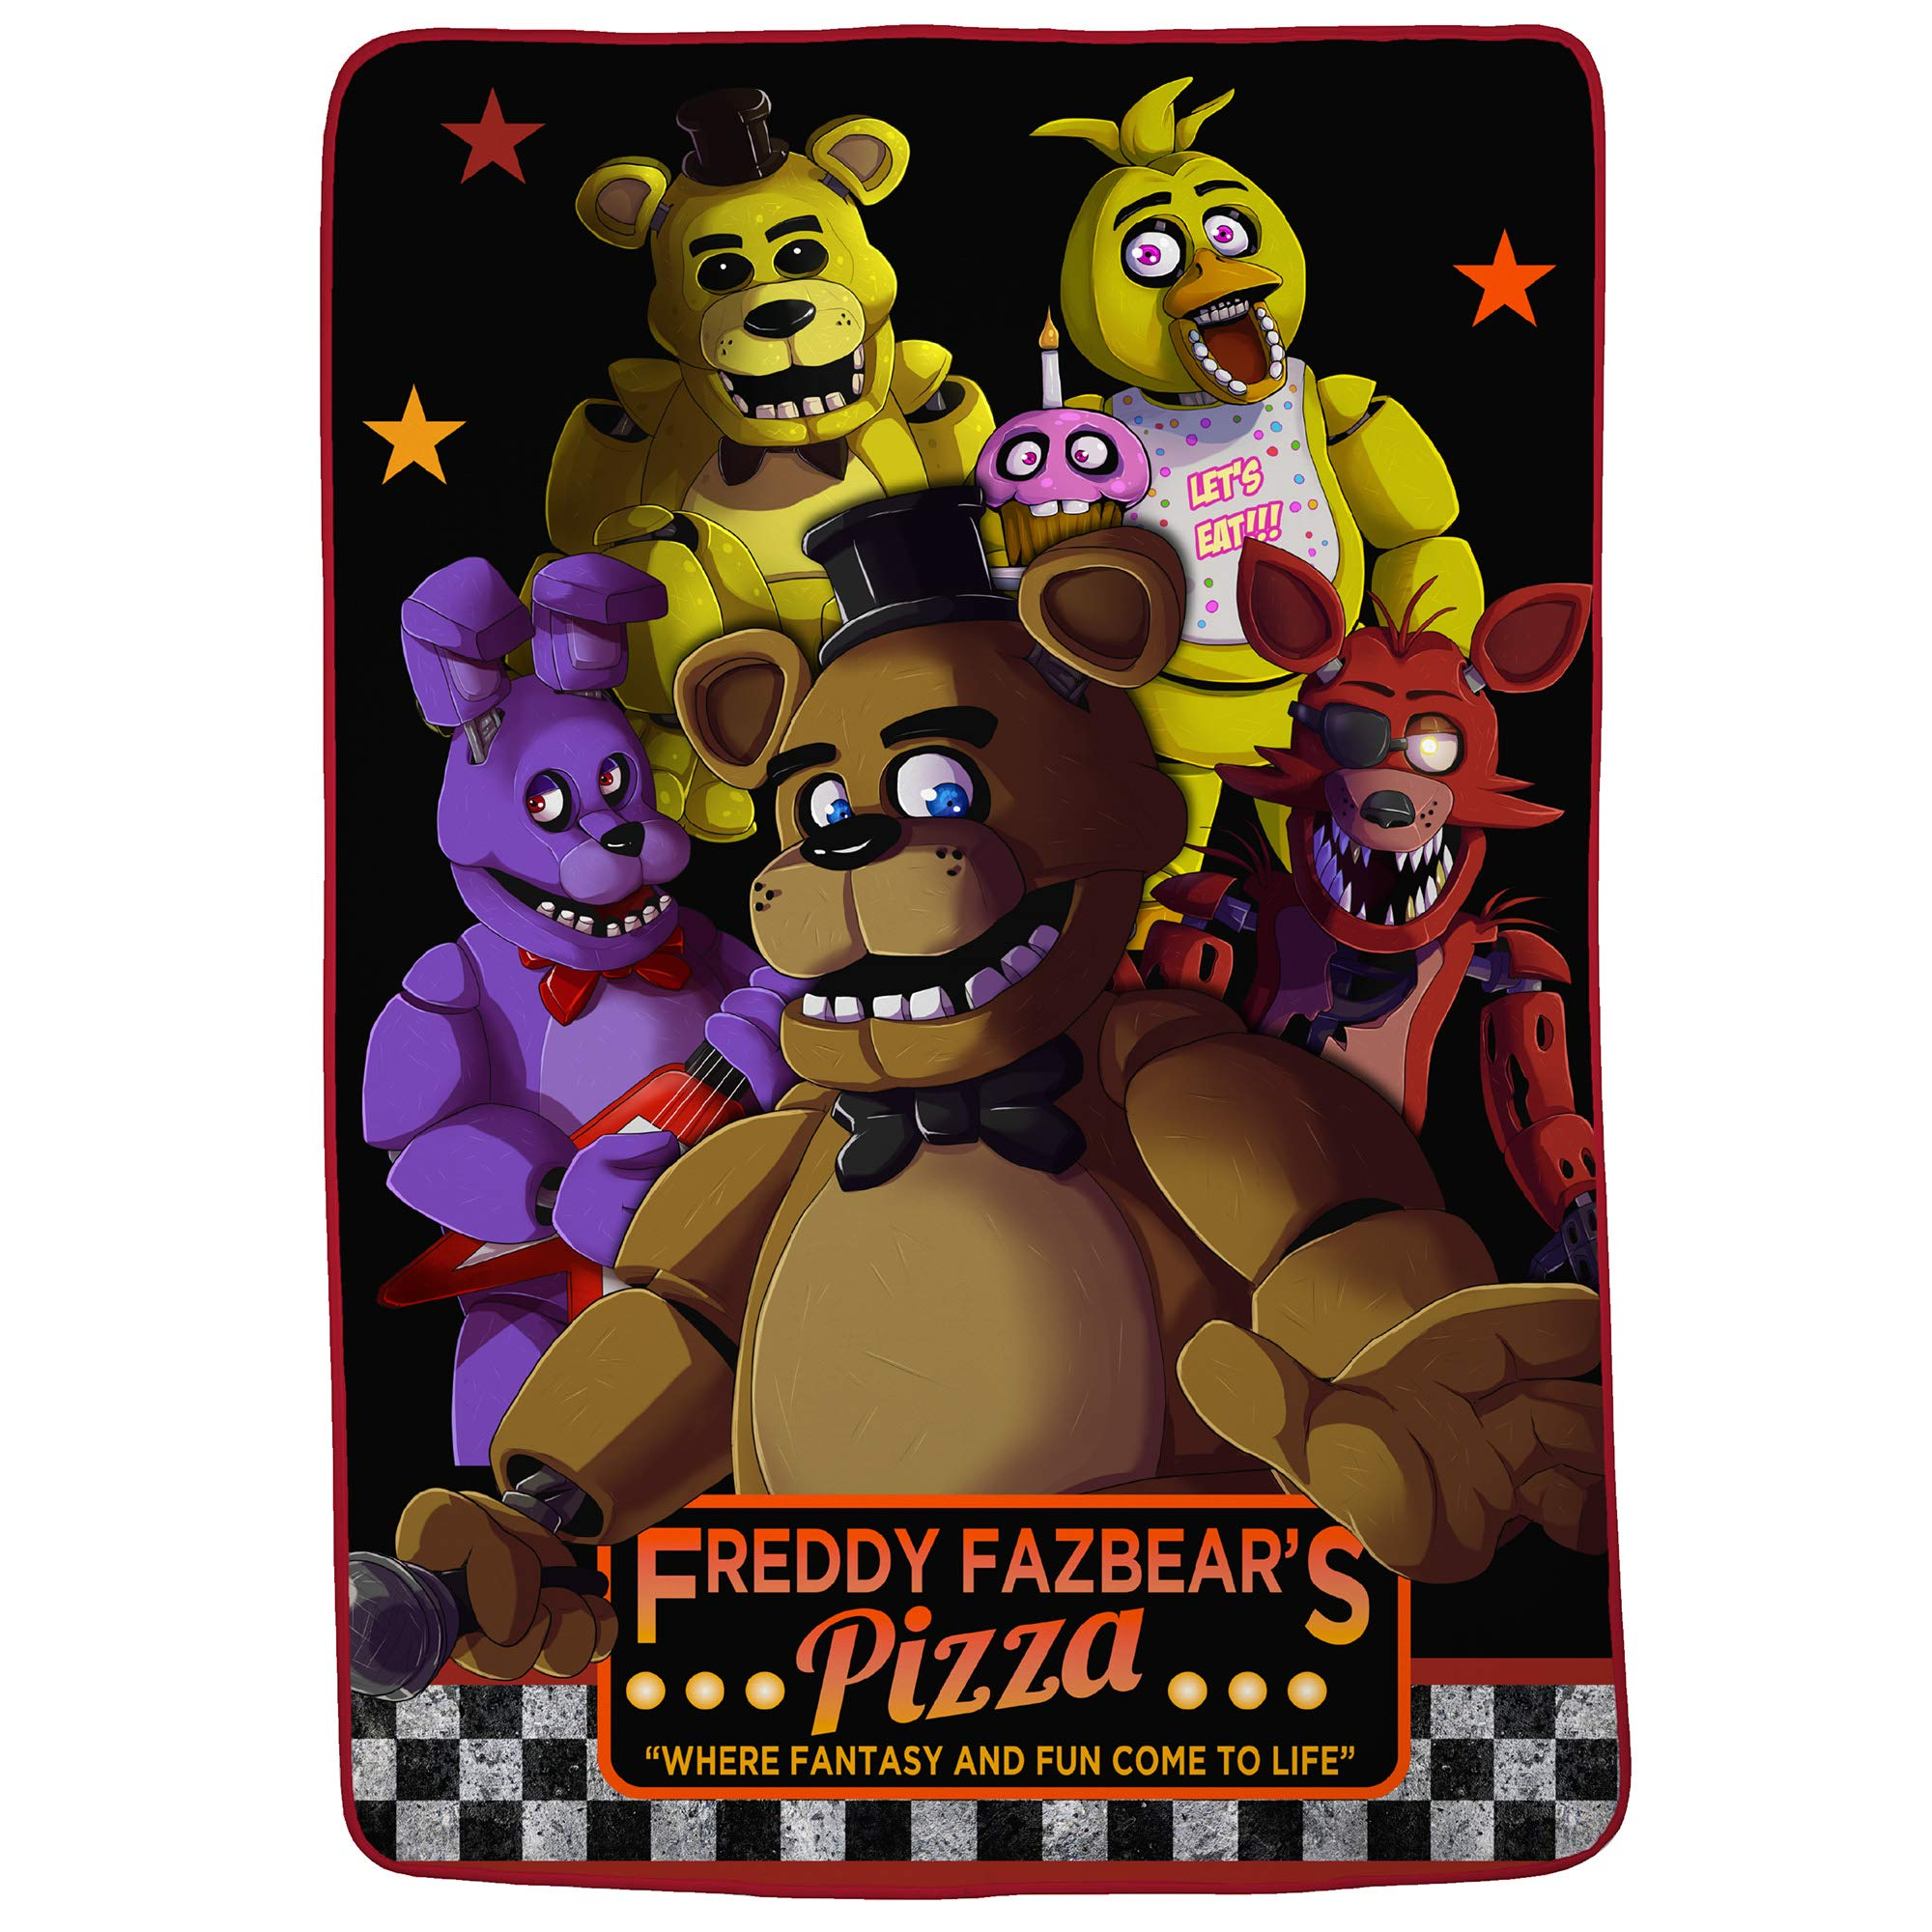 Franco Kids Bedding Super Soft Blanket, Twin/Full Size 62'' x 90'', Five Nights at Freddy's by Franco